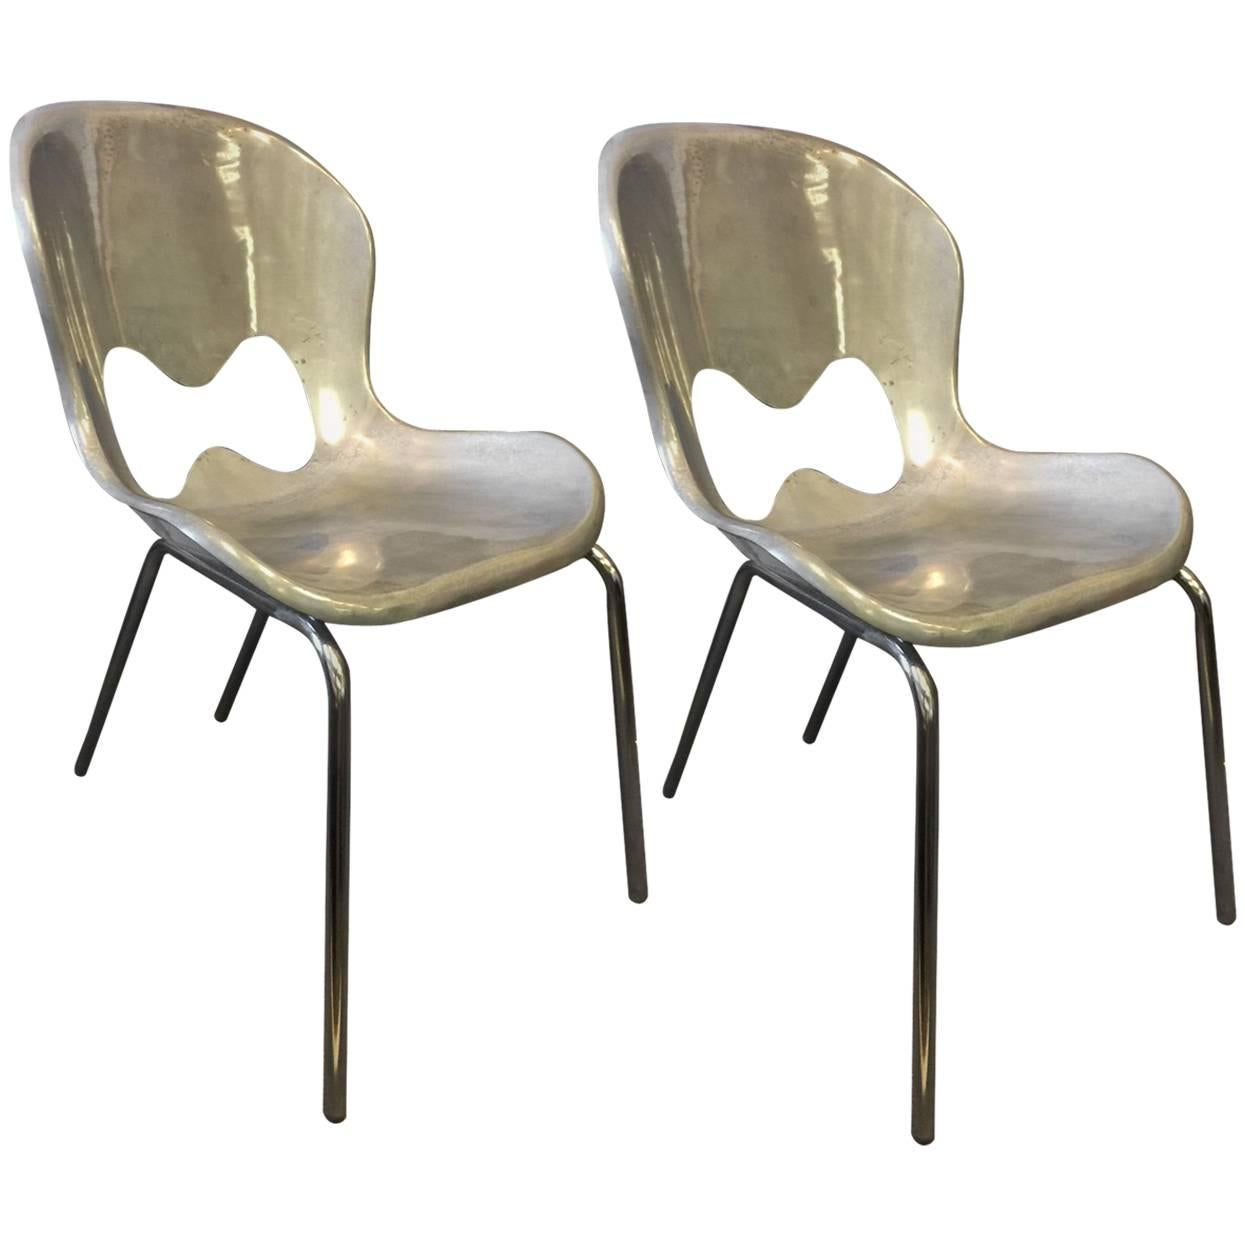 Pair Of Stainless Steel Chairs By Karim Rashid For Umbra For Sale